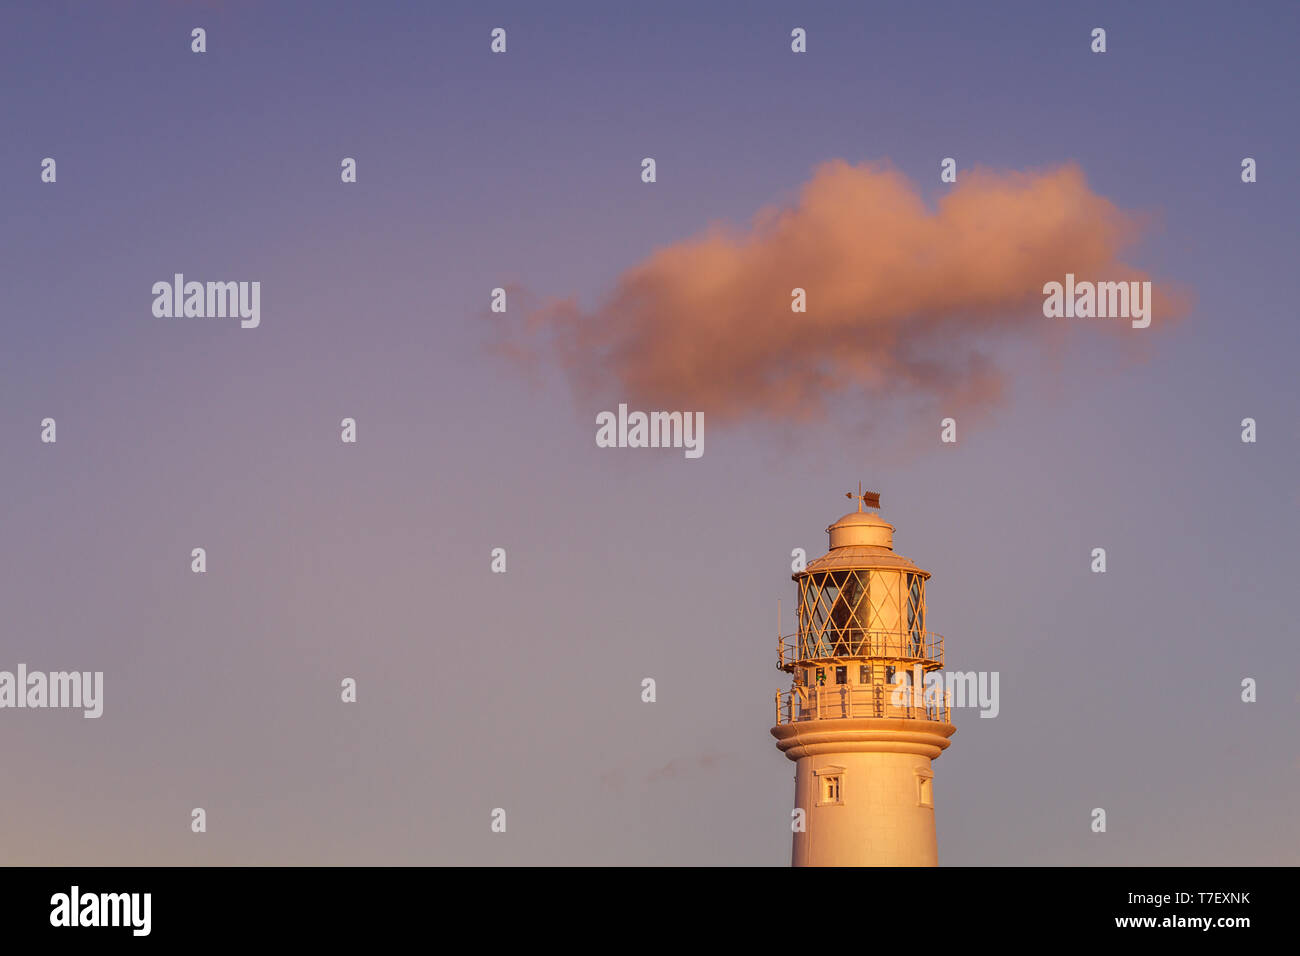 View of Flamborough lighthouse at sunset with a single cloud travelling over the top in blue sky and pink light of the setting sun, East Yorkshire, UK Stock Photo